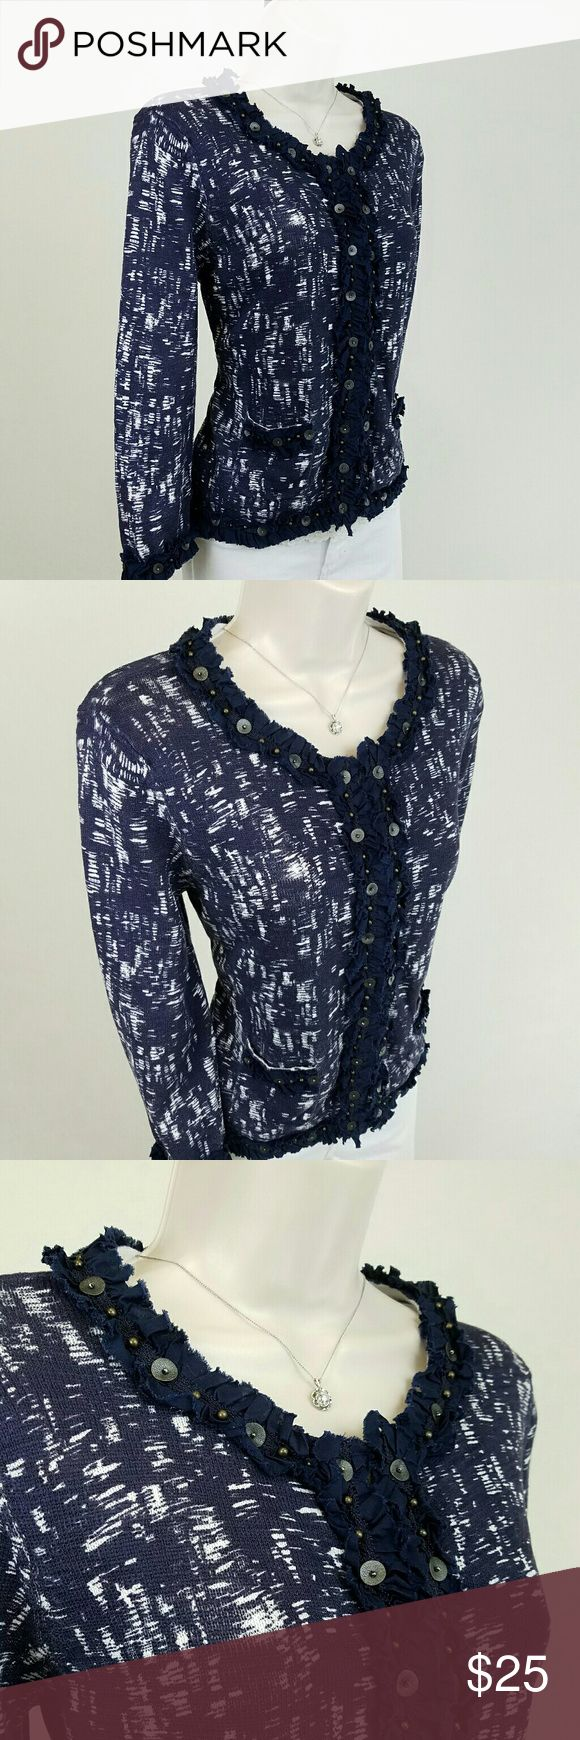 Chico embellished navy cardigan Long-sleeved crew neck cardigan in abstract navy blue and white pattern featuring ruffle trim embellished with tiny brass beads and leather paillettes.  Hook & eye closures and two front pockets. Chico's size 1.  Bust 18.5 / length 21 inches.  100% cotton.  Thanks for visiting my closet!  I add listings every week; come back soon & see what's new! Chico's Sweaters